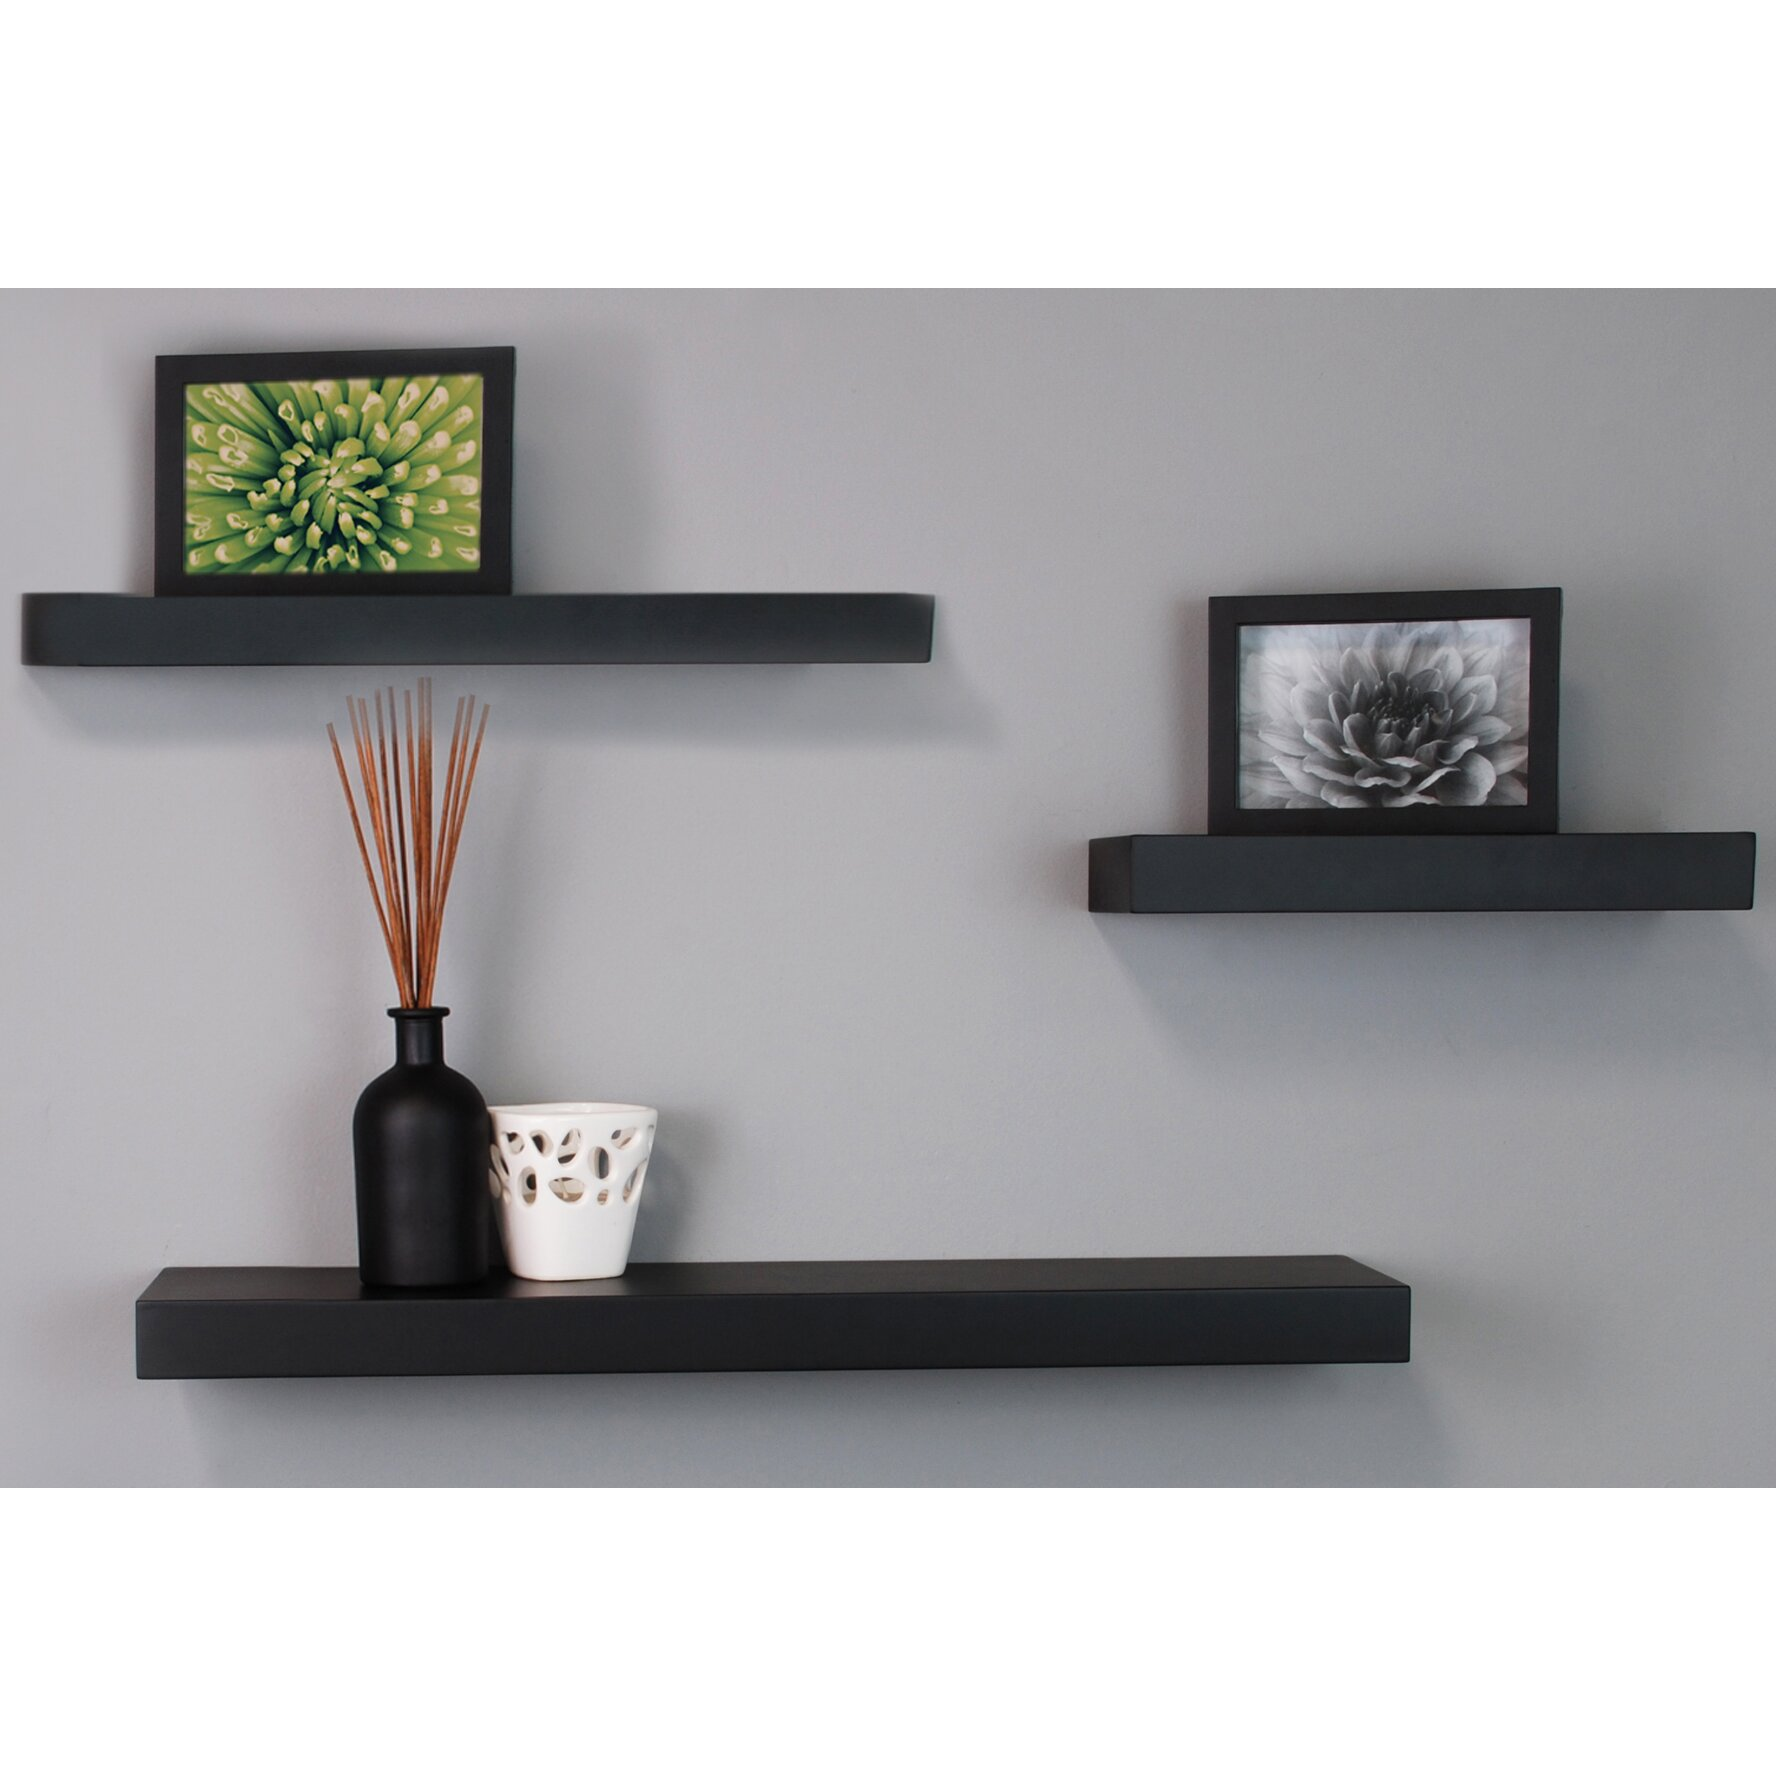 Nexxt design 3 piece maine wall shelf set reviews wayfair for Wall piece design